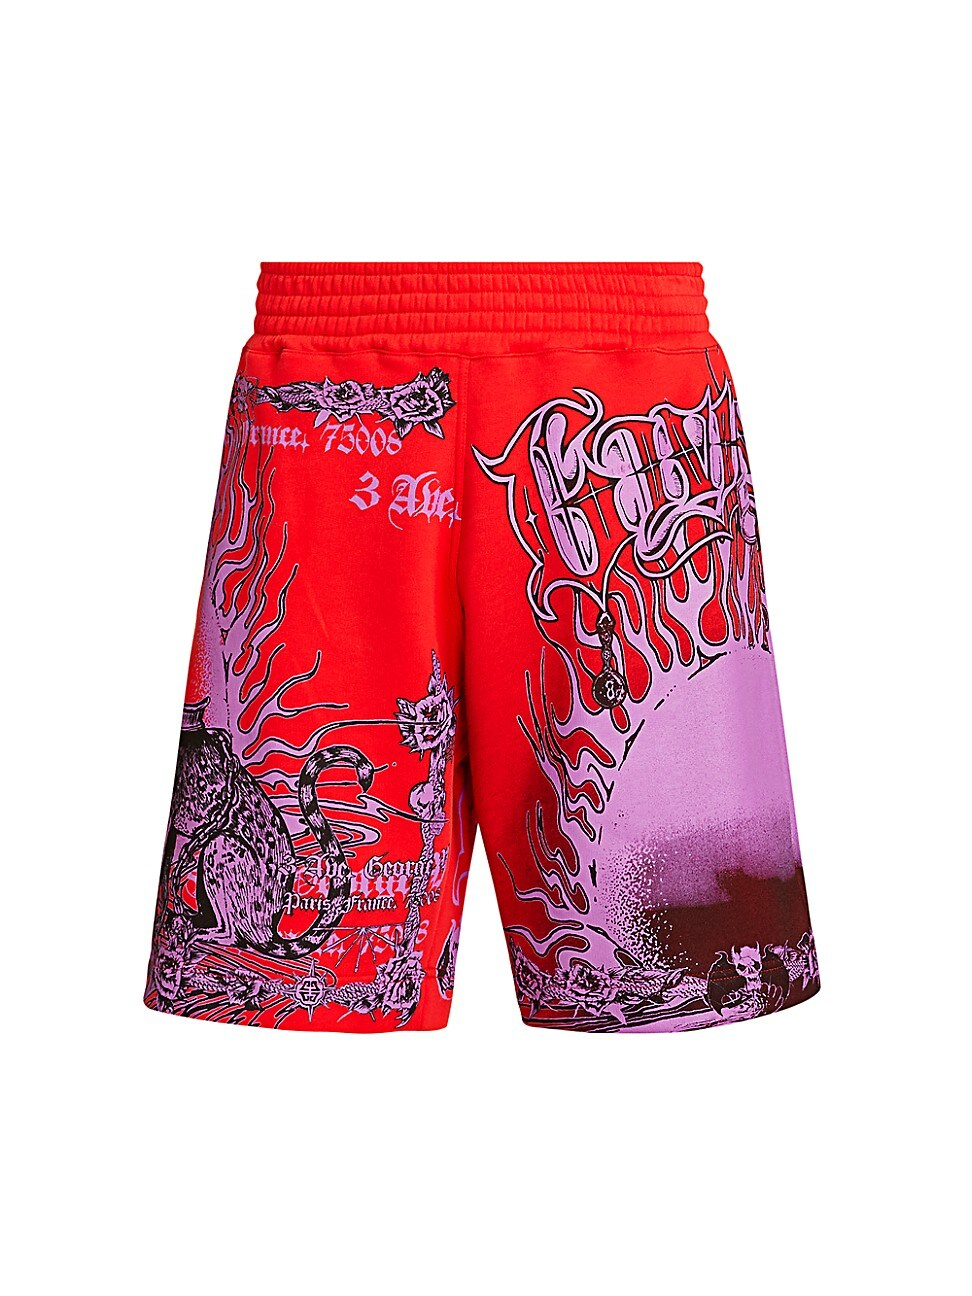 Givenchy Cottons MEN'S ULTRA PURPLE GRAPHIC SHORTS